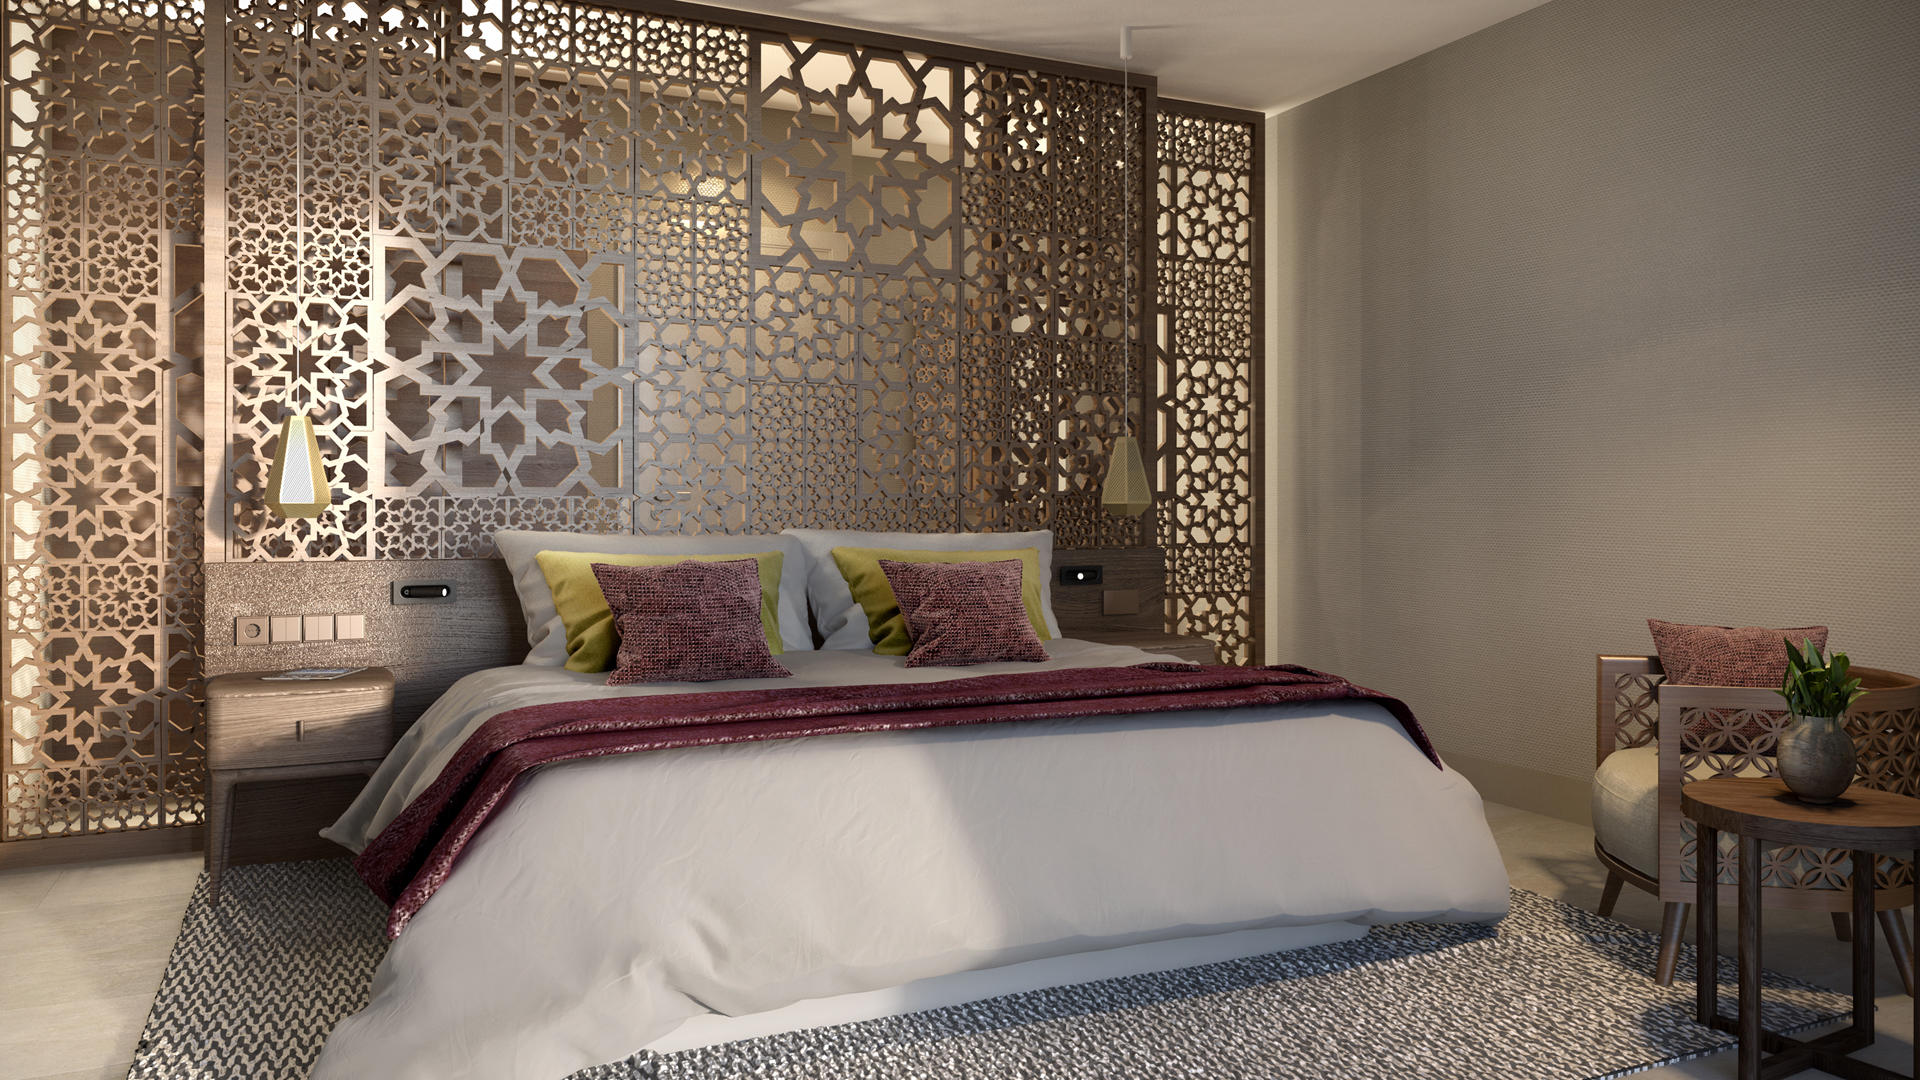 Shaza_Riyadh_Bedroom